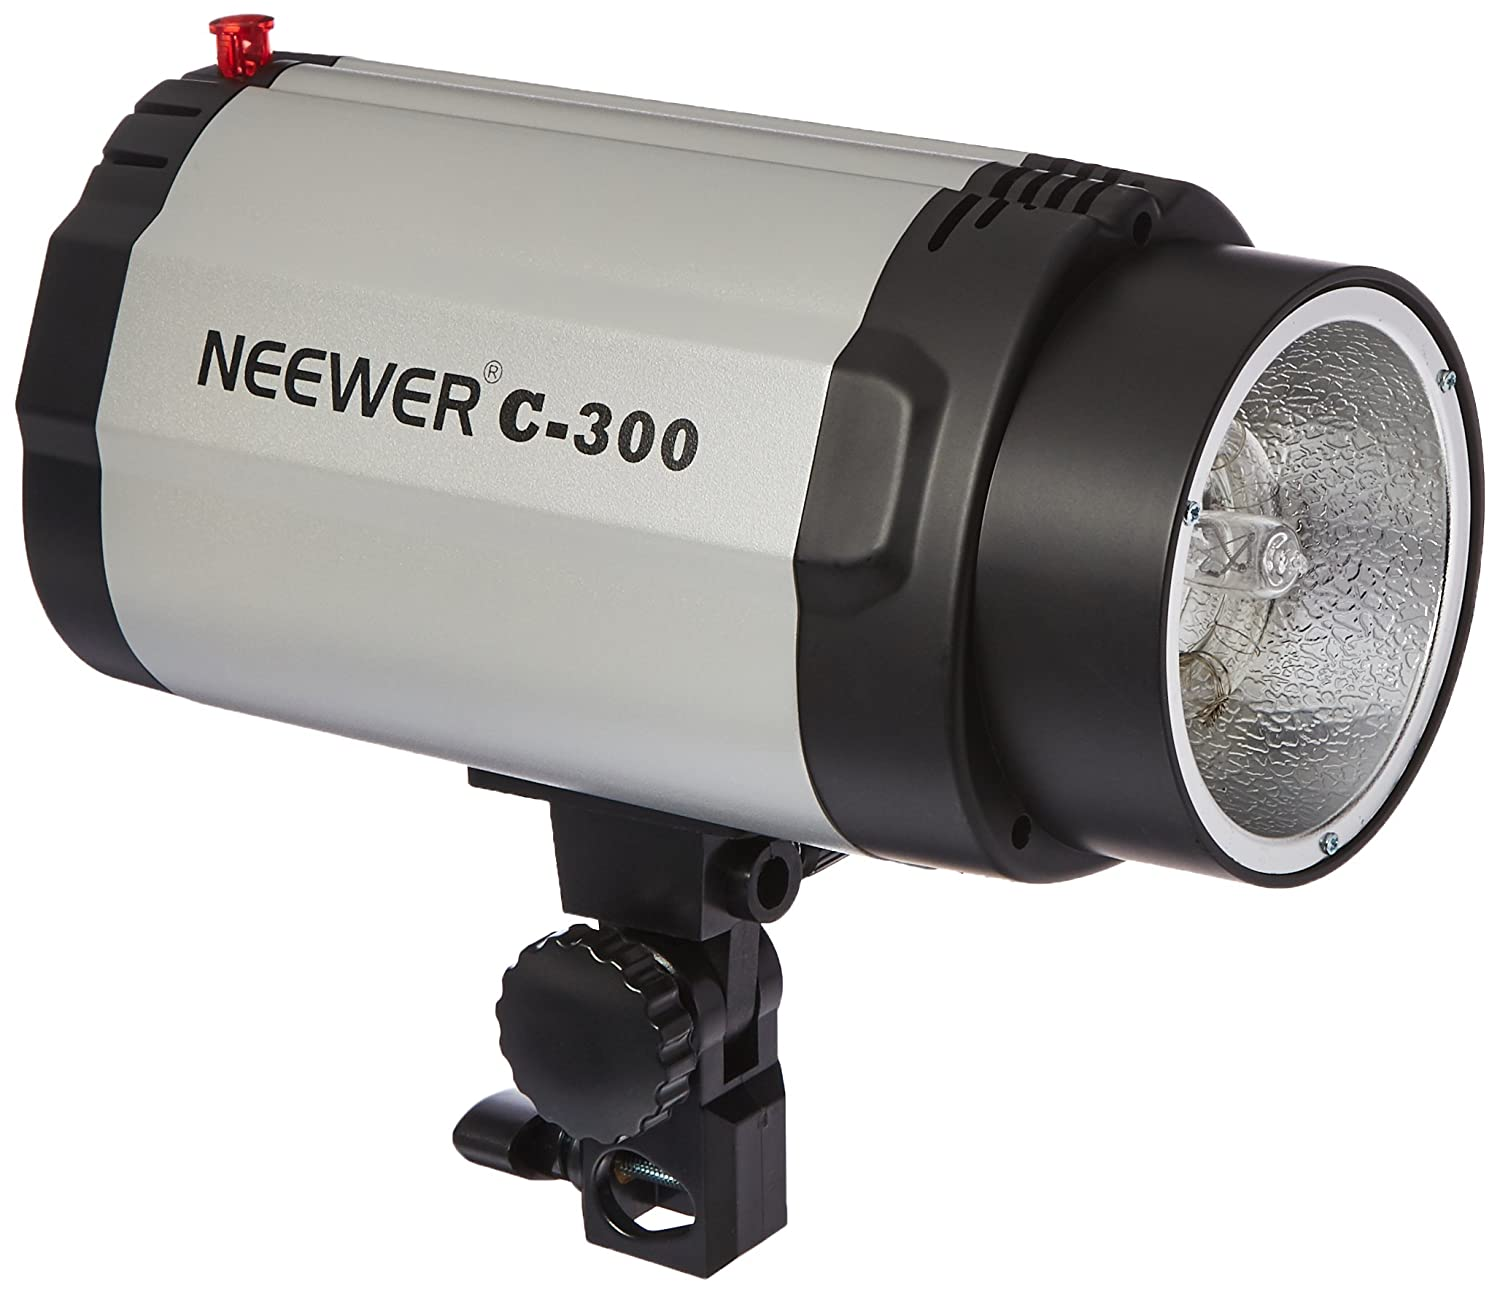 Neewer 300W Strobe/Flash Light for Studio, Location and Portrait Photography 10000200